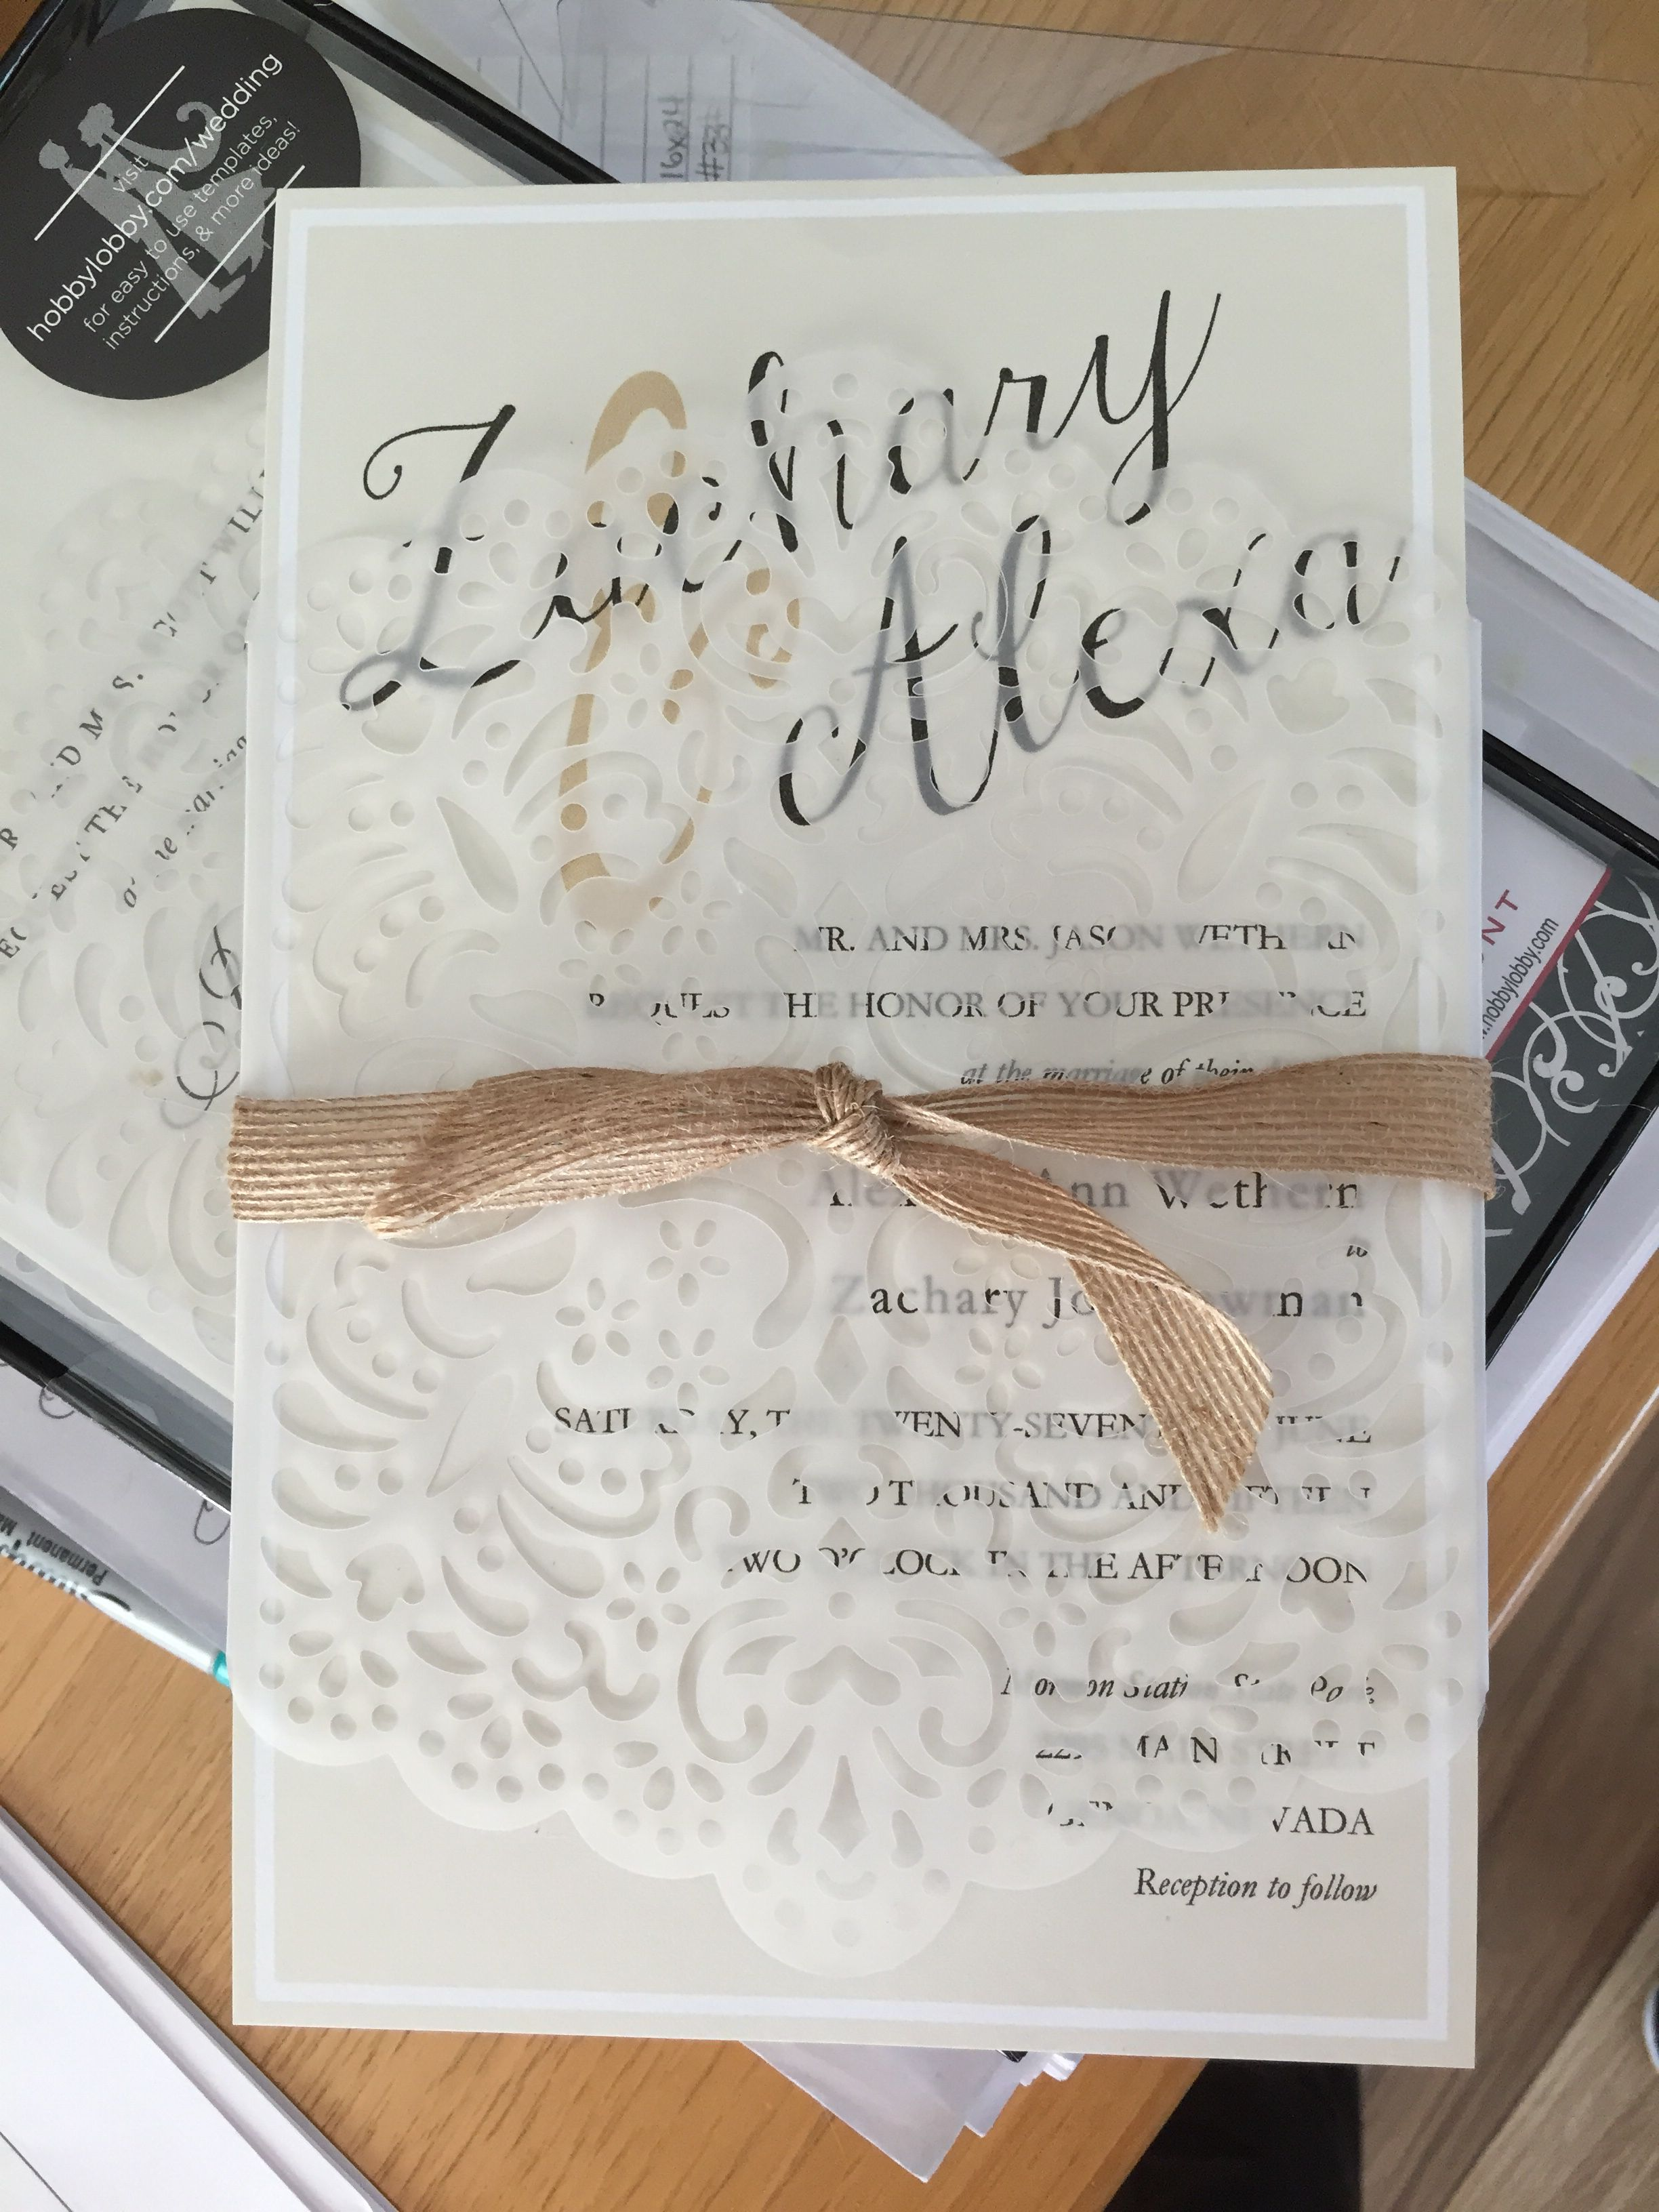 Hobby Lobby Wedding Invitations My Own Diy Projects Pinterest